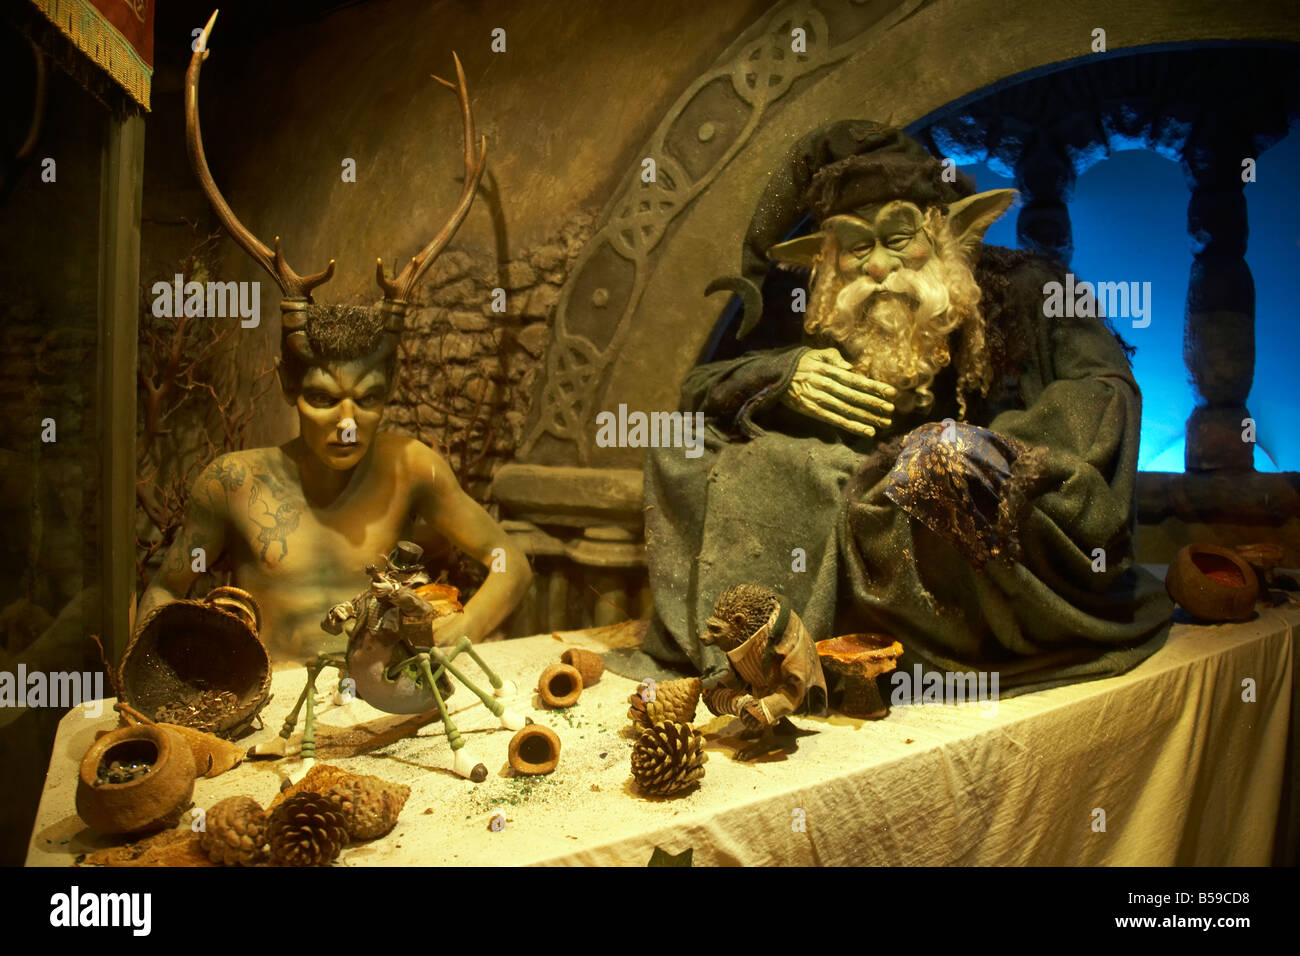 Elf and Satyr models in Blackgang Chine Fantasy Park Isle of Wight England UK Family and childrens visitor attraction - Stock Image